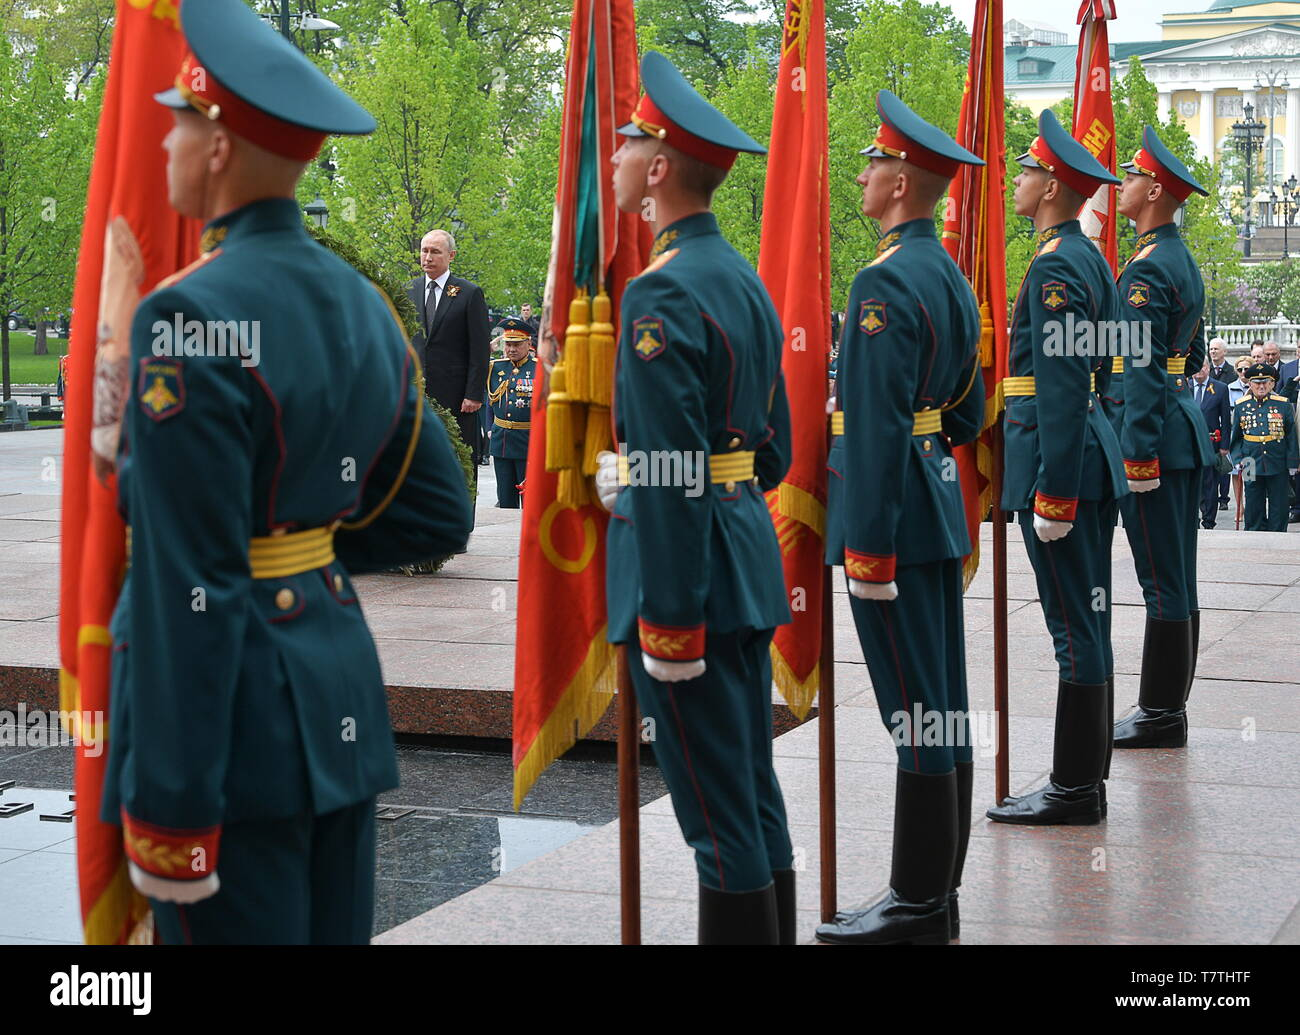 Moscow, Russia. 09th May, 2019. MOSCOW, RUSSIA - MAY 9, 2019: Russia's President Vladimir Putin, Russia's Defence Minister Sergei Shoigu (L-R back) during a ceremony to lay flowers at the Tomb of the Unknown Soldier by the Kremlin Wall during celebrations marking the 74th anniversary of the victory of the Soviet Red Army over Nazi Germany in the Great Patriotic War of 1941-45, the Eastern Front of the Second World War. Alexei Druzhinin/Russian Presidential Press and Information Office/TASS Credit: ITAR-TASS News Agency/Alamy Live News - Stock Image